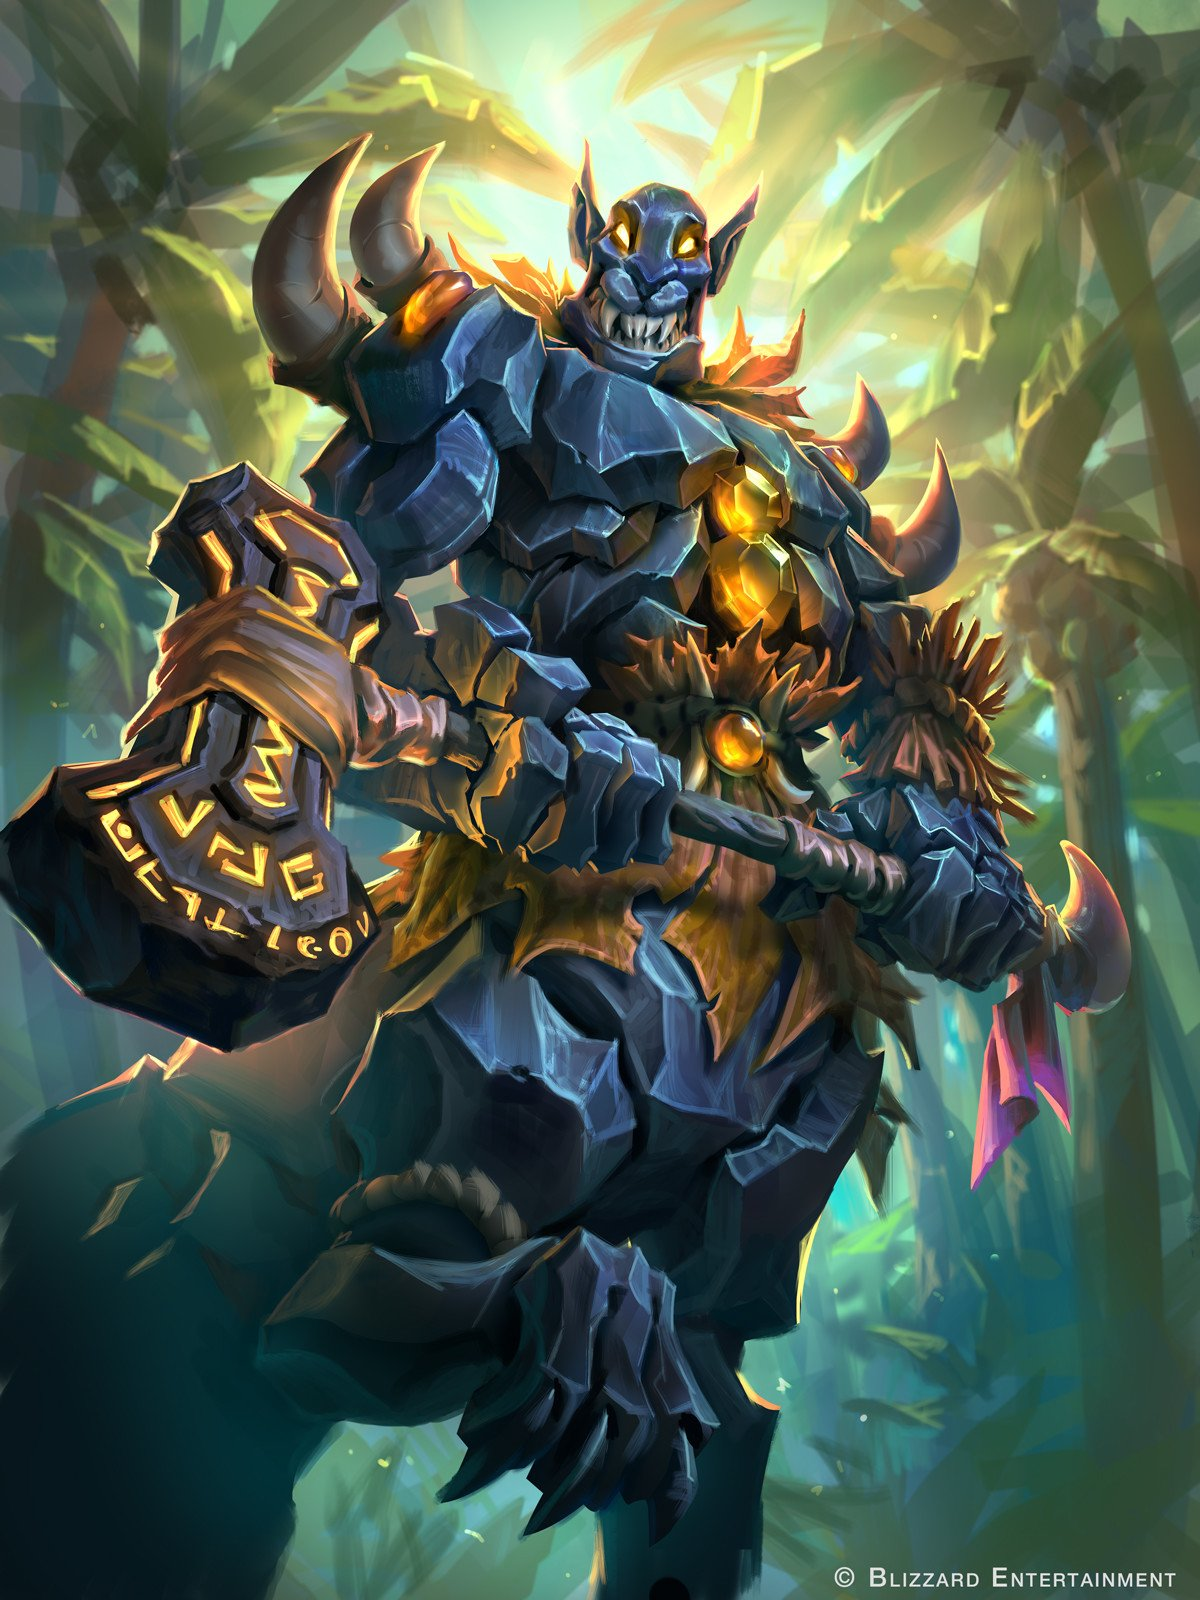 Fall Of The Lich King Wallpaper Journey To Un Goro Full Card Art Roundup Hearthstone Top